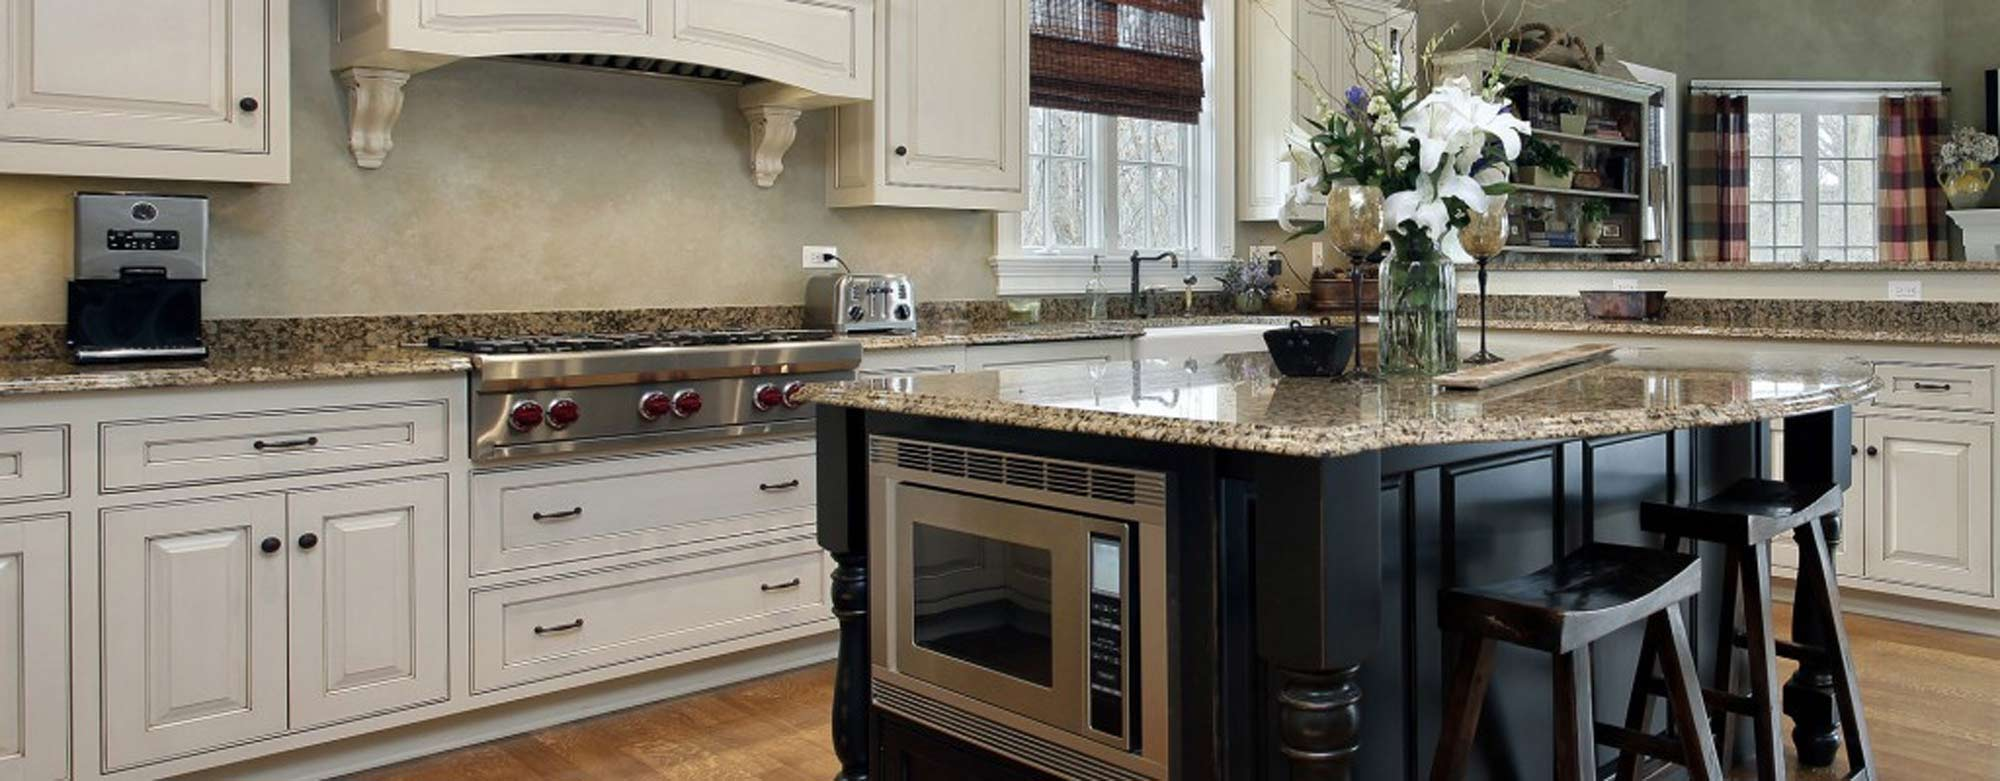 California Kitchens : Licensed, Bonded and Insured